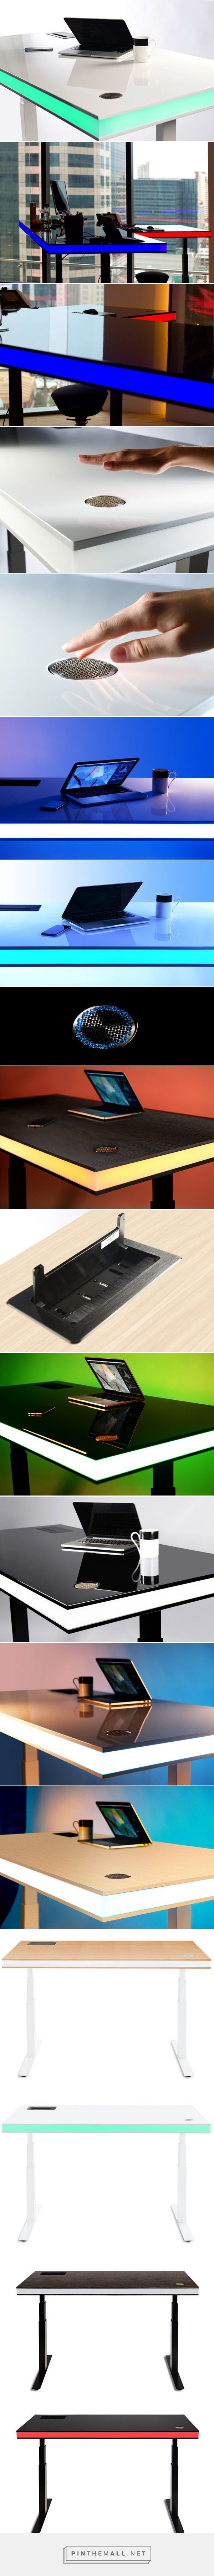 table air utilizes integrated smart sensor to alter desk height - created via http://pinthemall.net